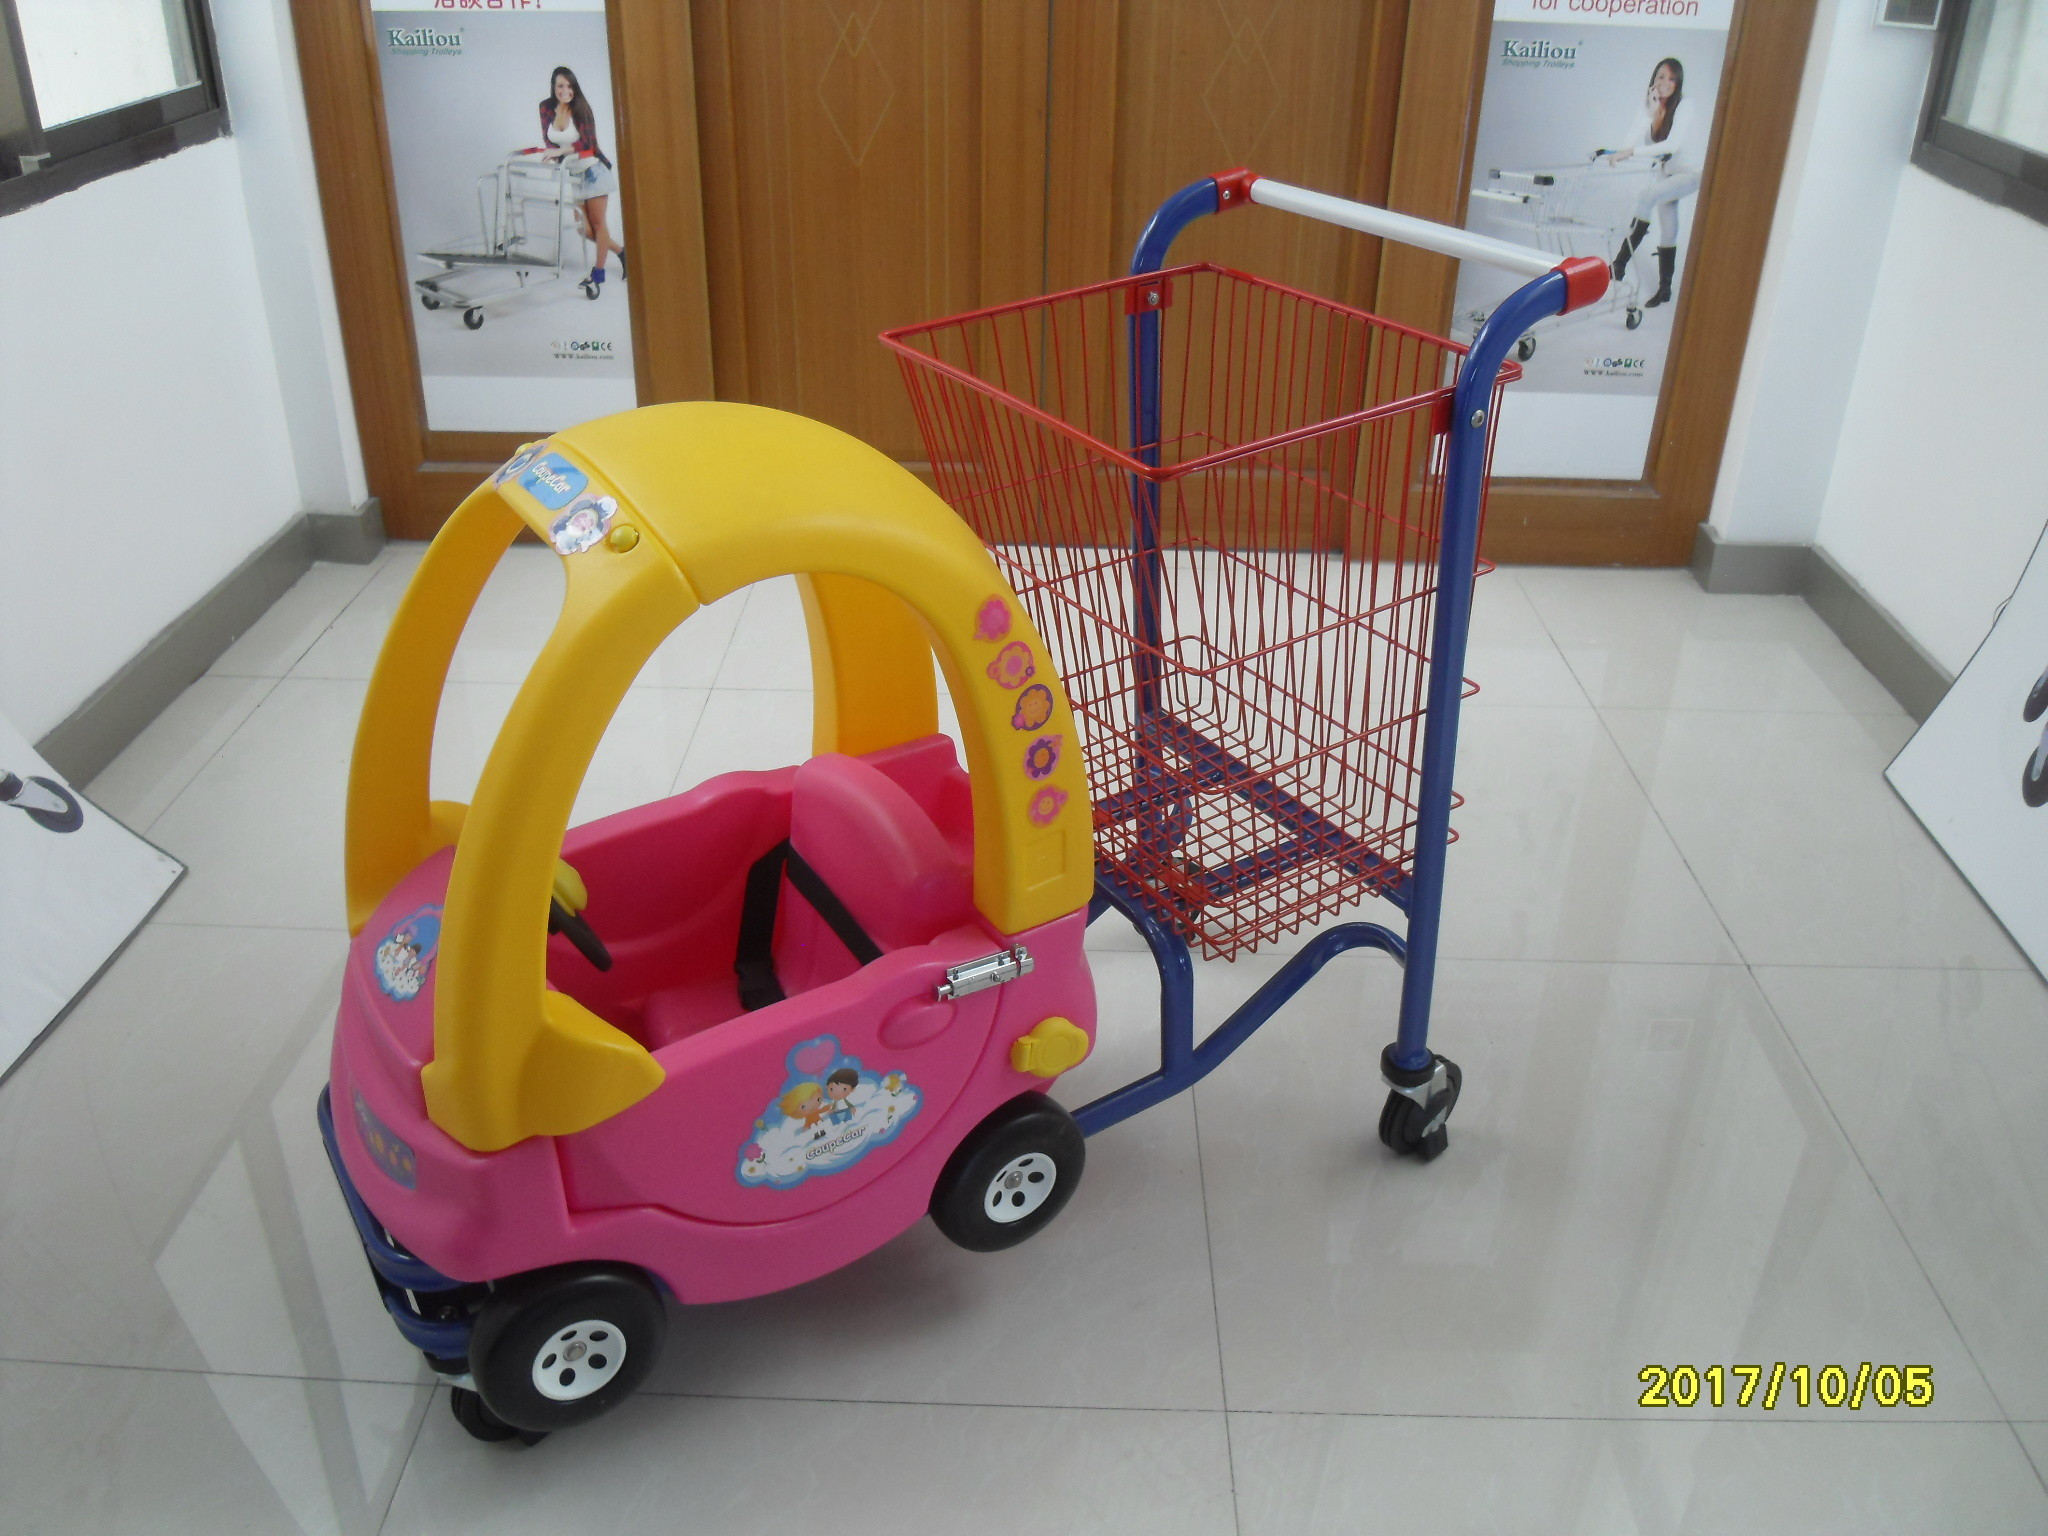 95L Low Carbon Steel / Plastic Children Shopping Cart With Red Powder Coating